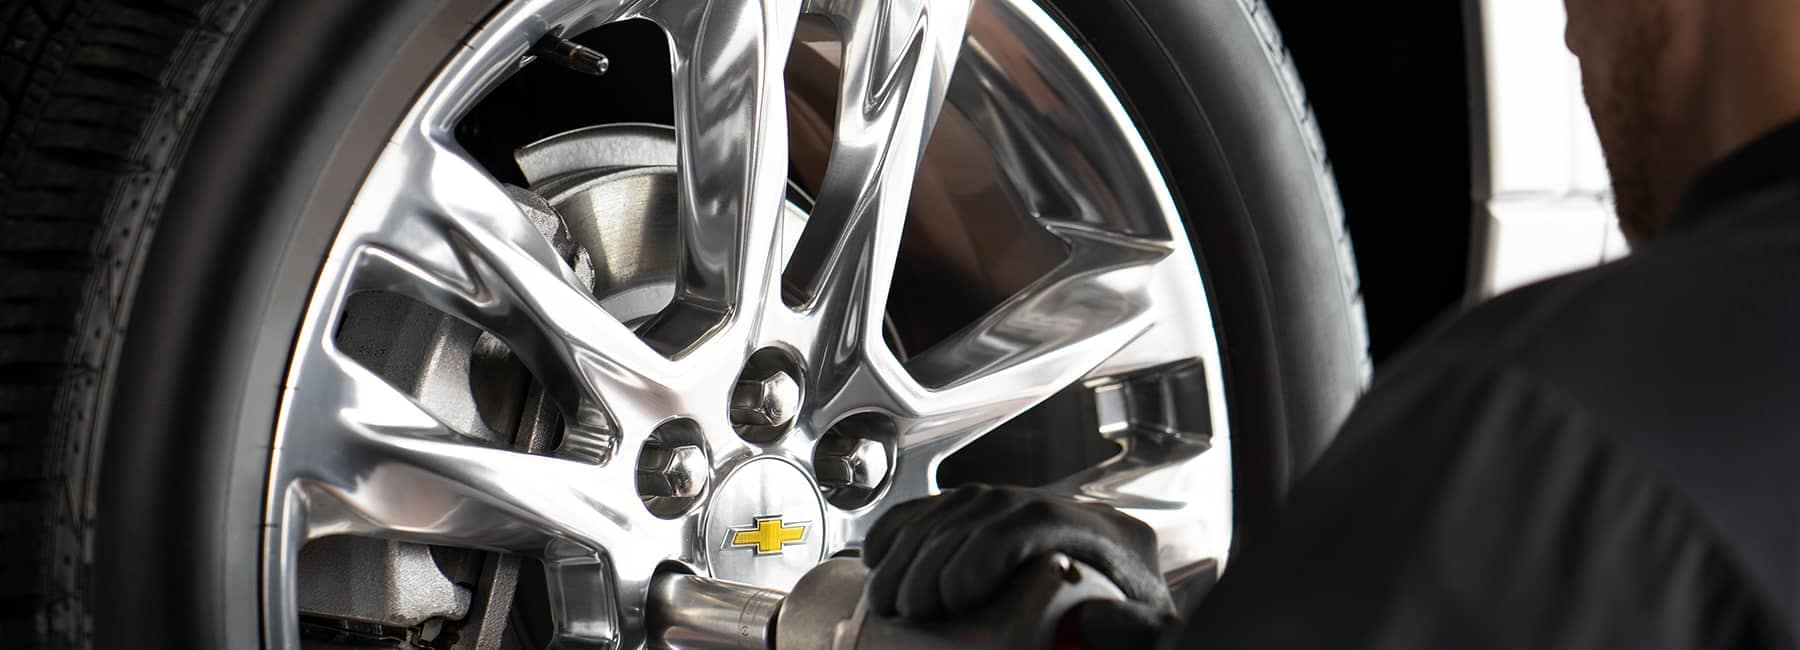 service technician tightens bolts on Chevy wheel